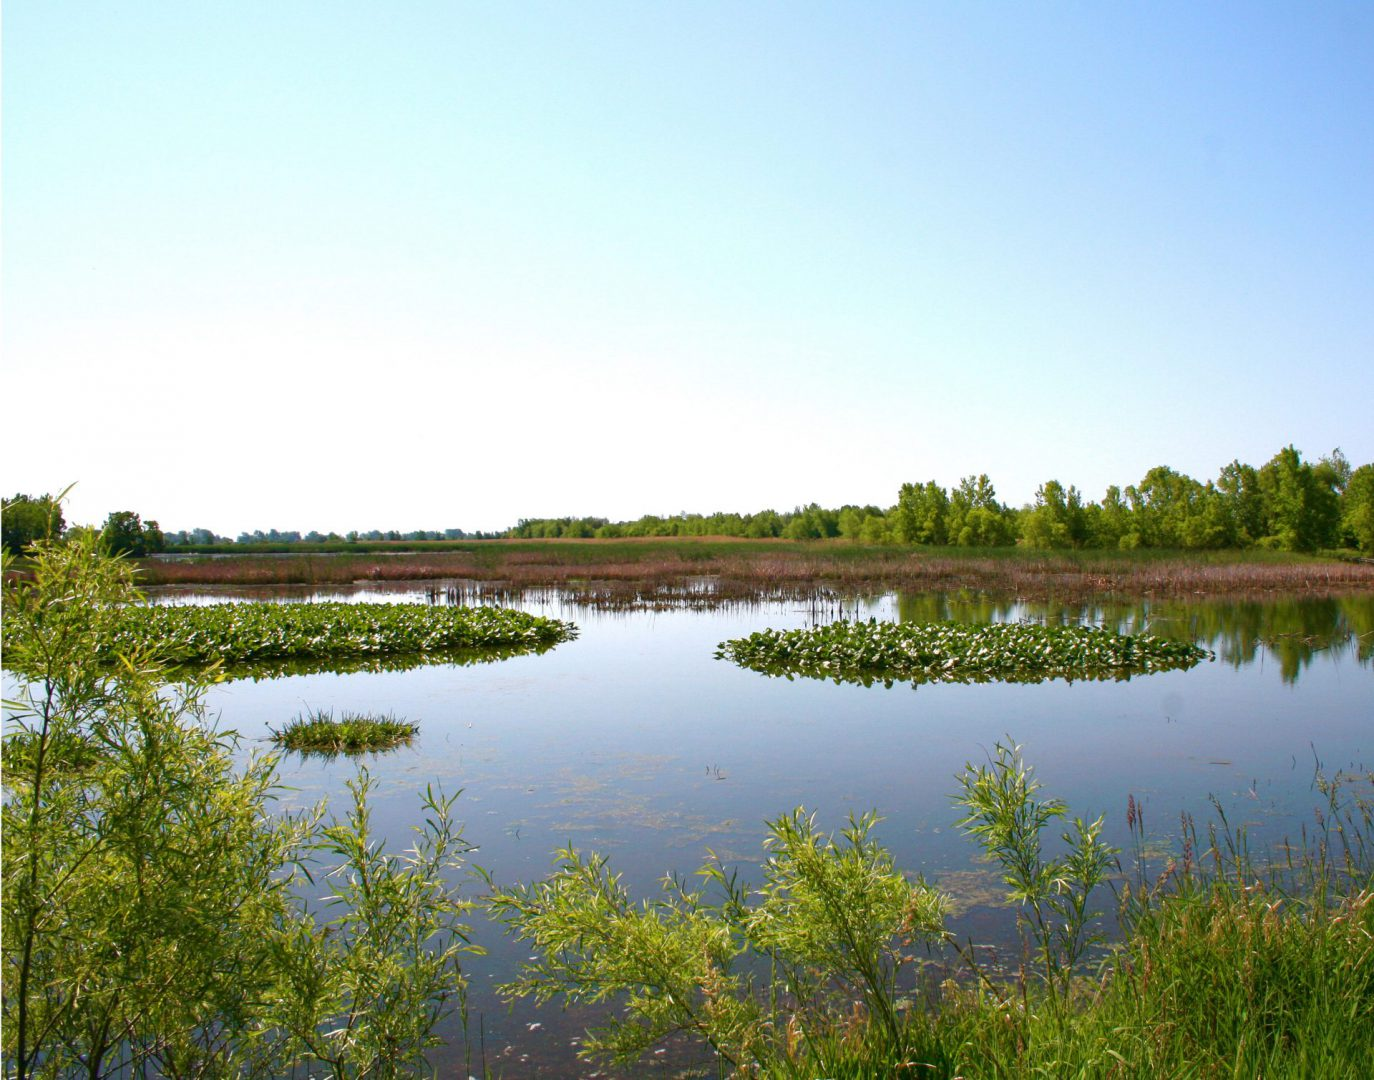 Marsh with forested background